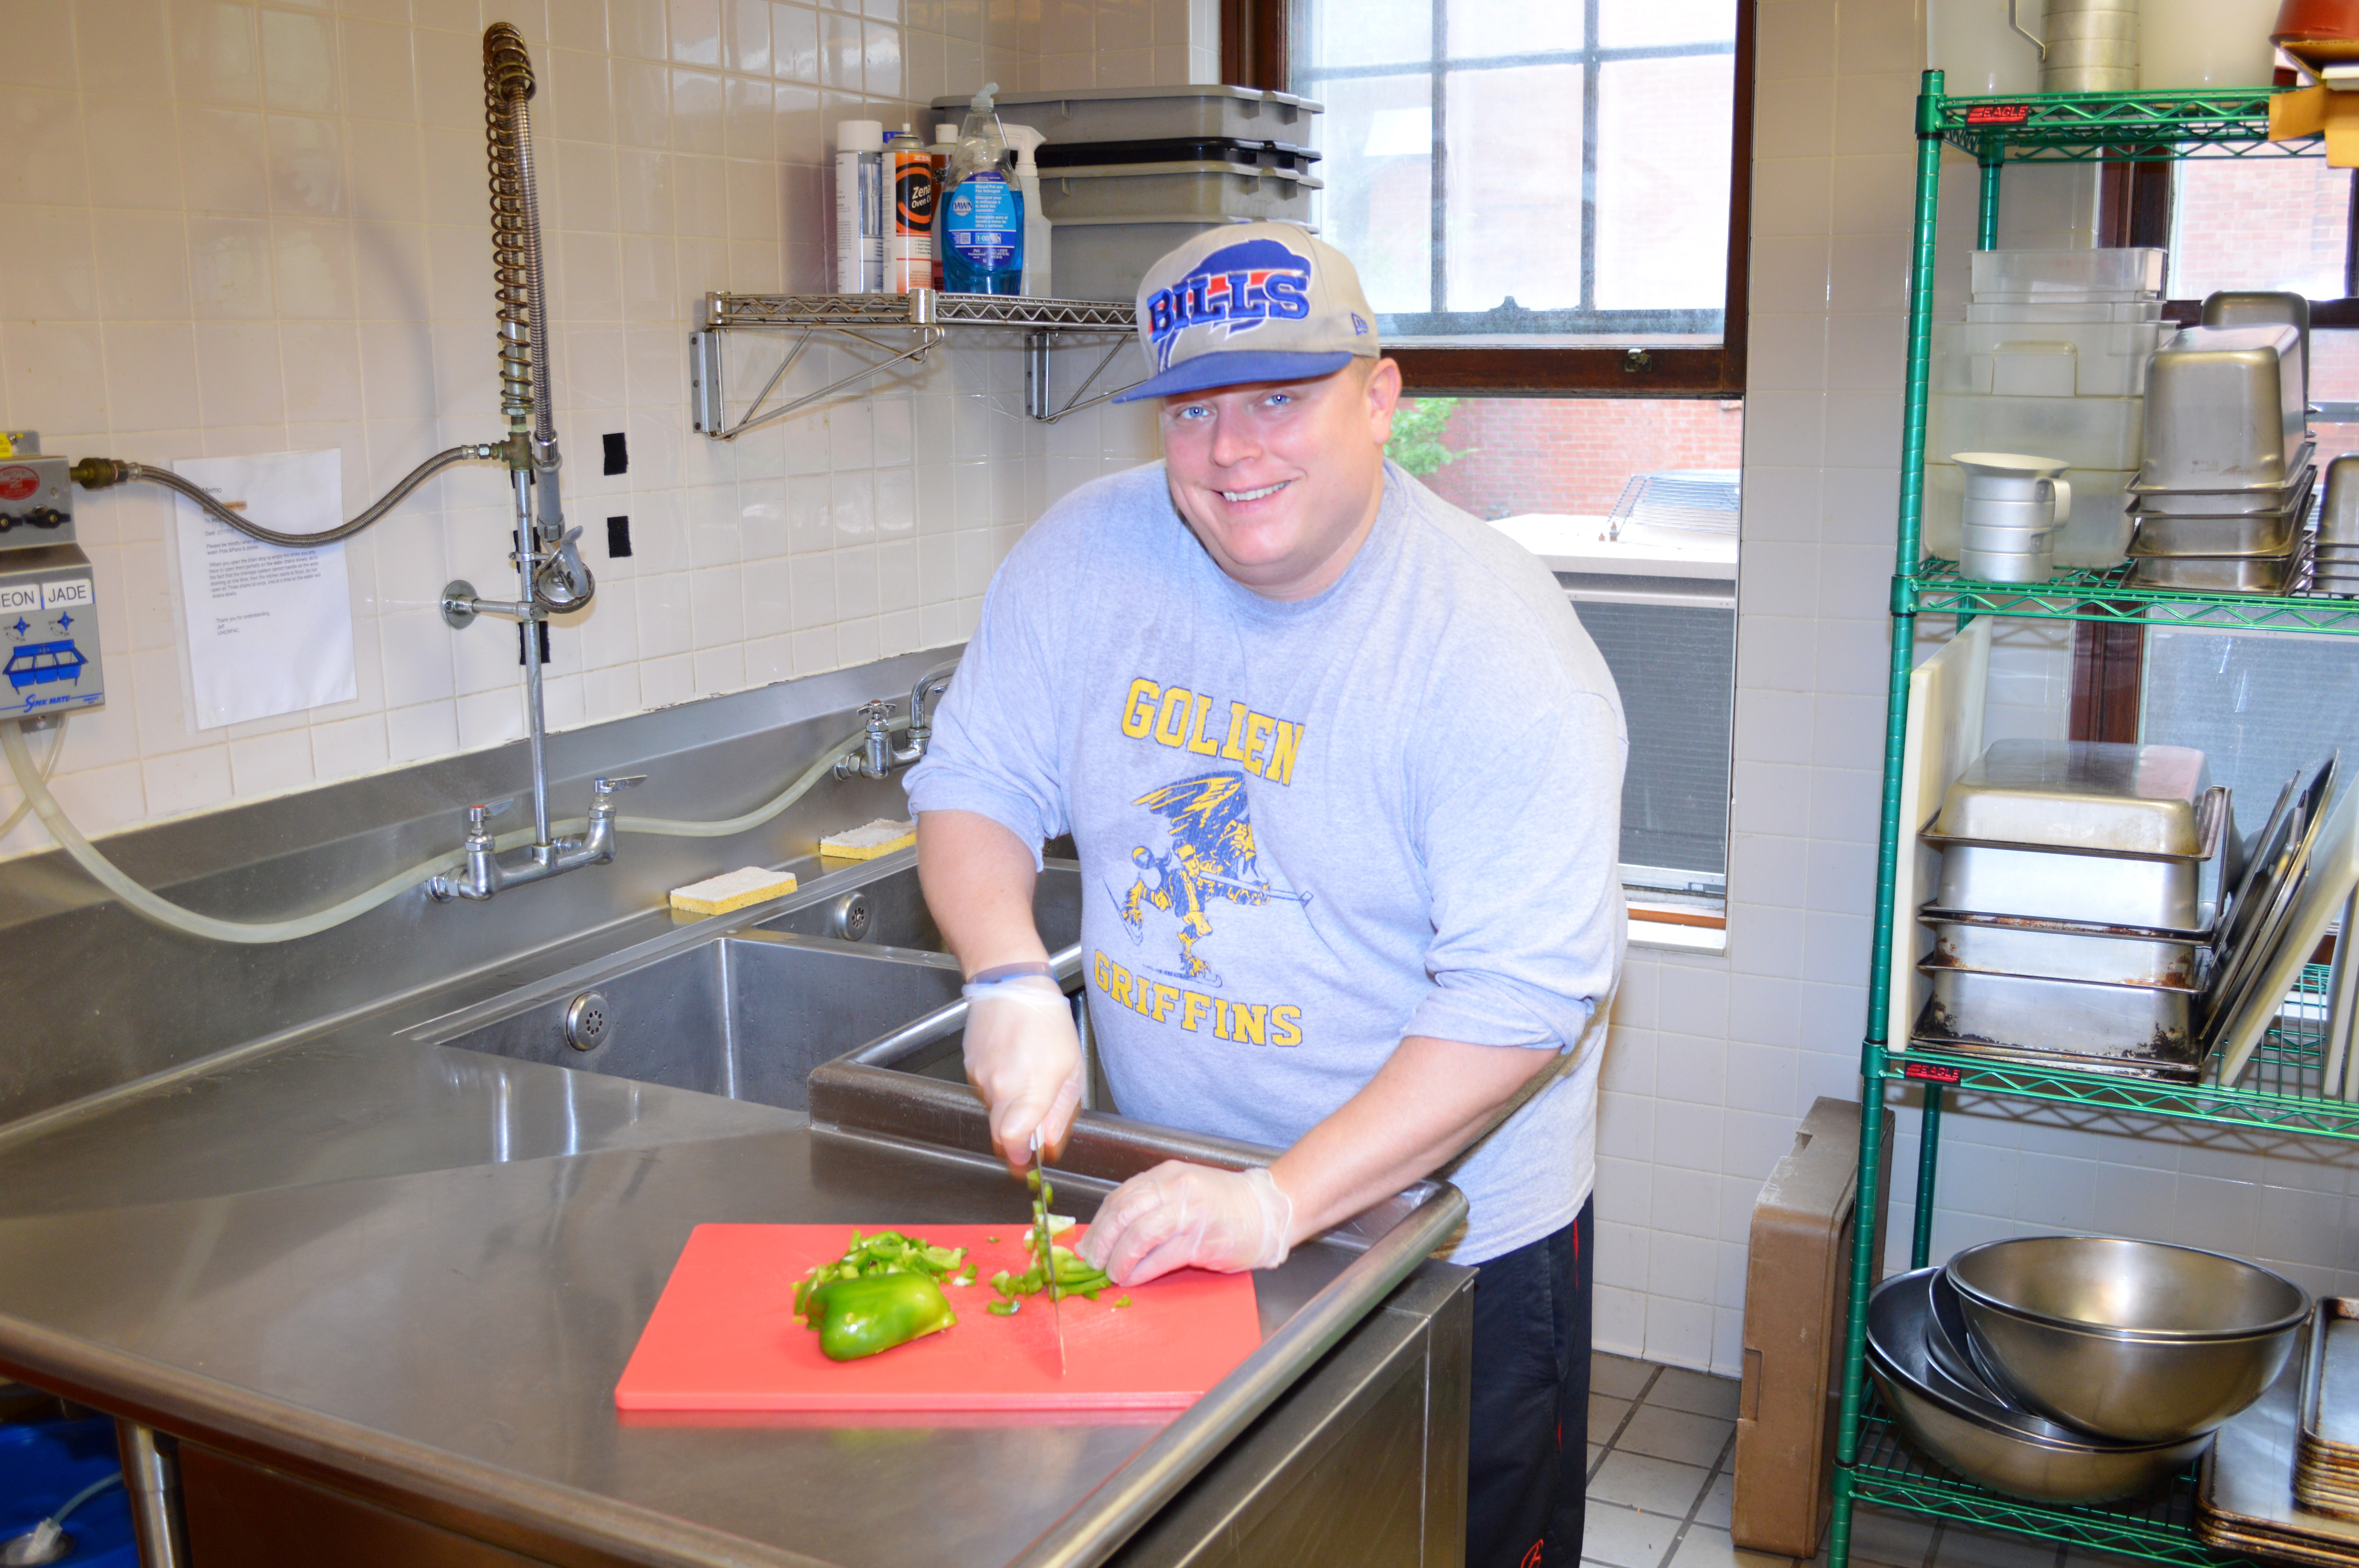 Ron Golden looks to recharge his life with an emphasis on sobriety and cooking.